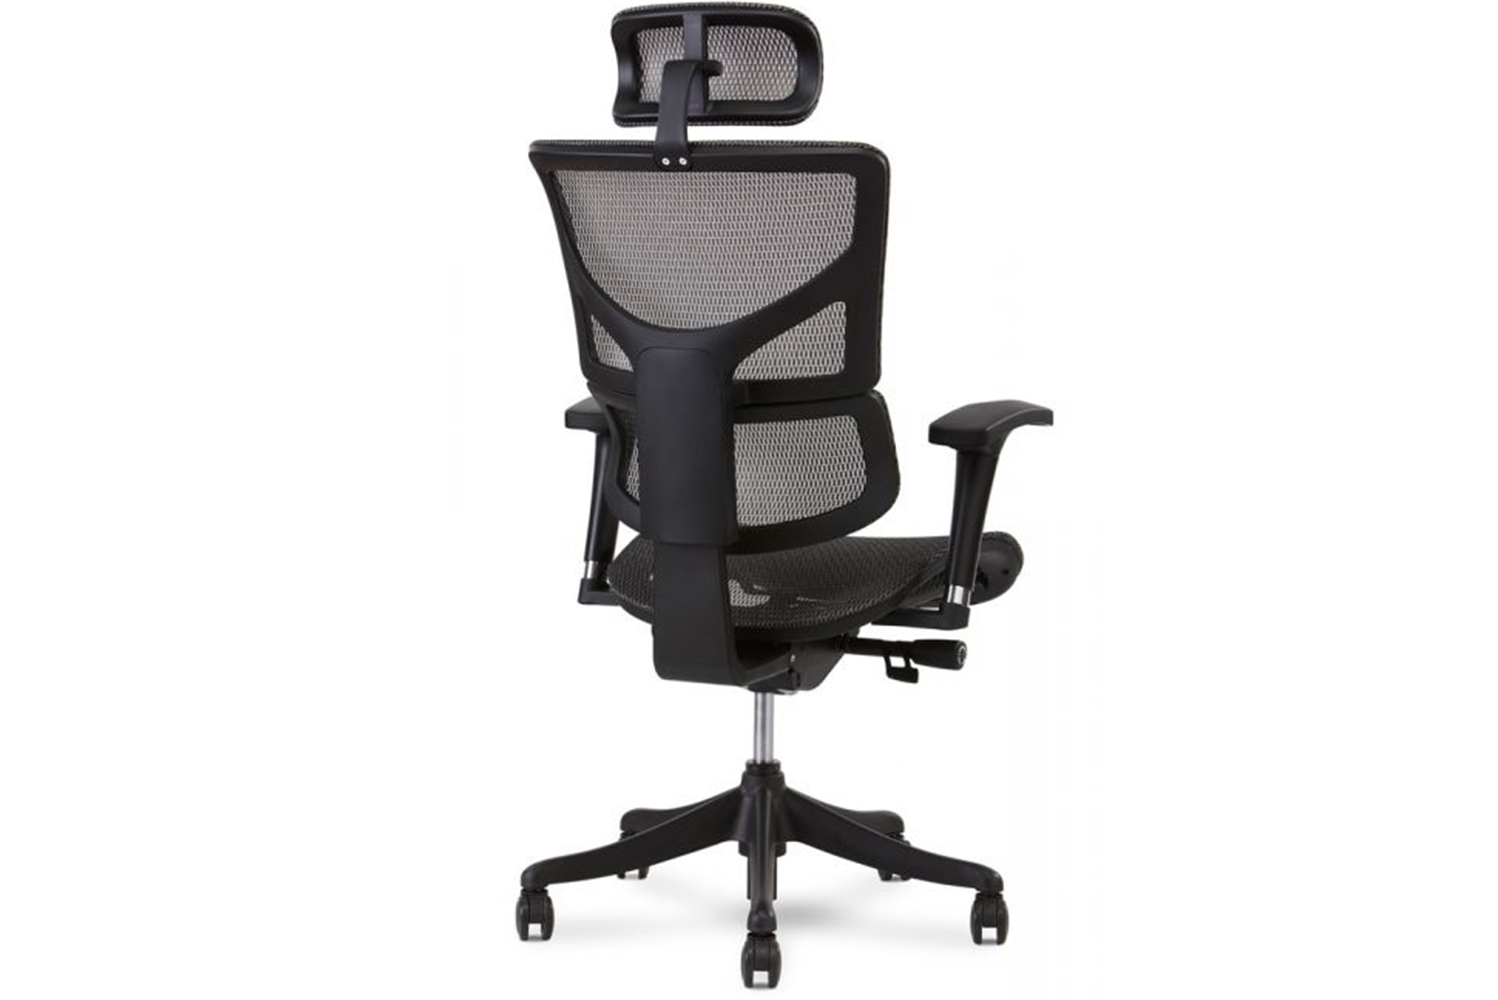 The chair is available in four colors (black, blue, green and gray), and is water, spill and stain resistant.